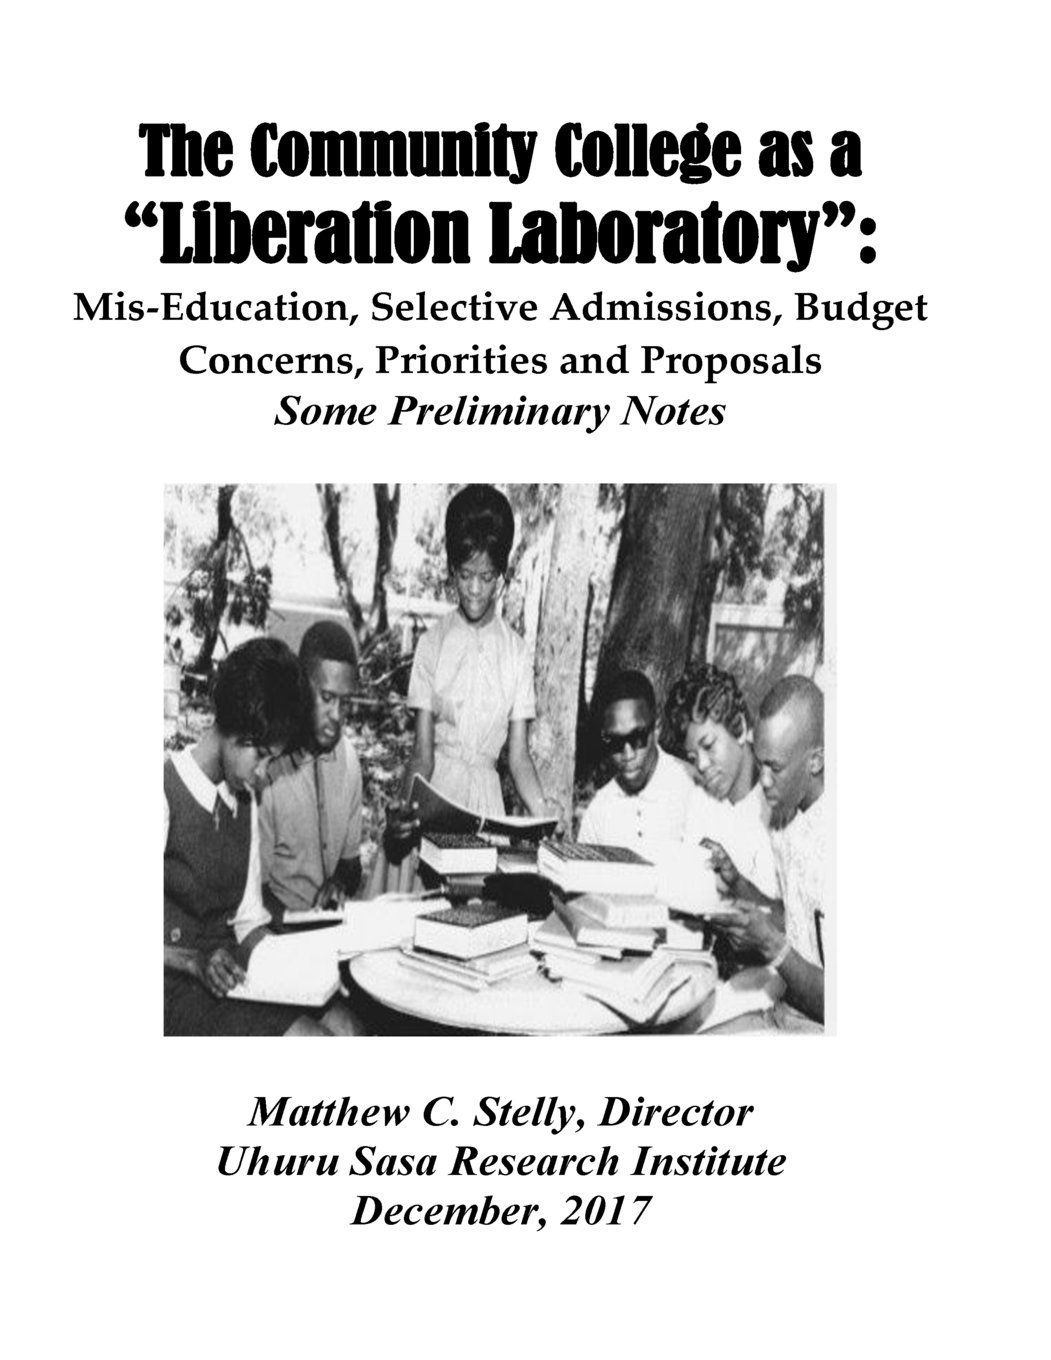 Download The Community College as a LIberation Laboratory: Mis-Education, Selective Admissions, Budget Concerns, Priorities and Proposals -- PDF